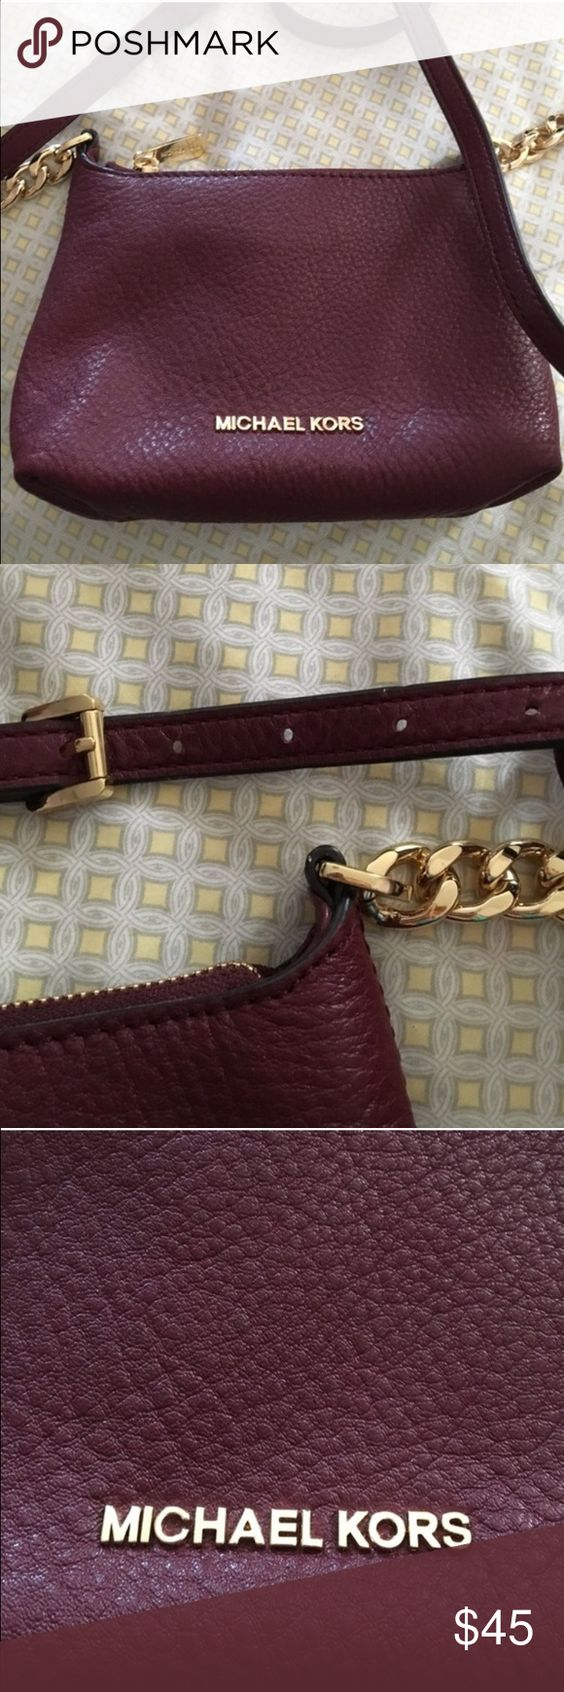 Small Michael Kors Crossbody BRAND NEW WITHOUT TAGS super cute crossbody Michael Kors Bags Crossbody Bags